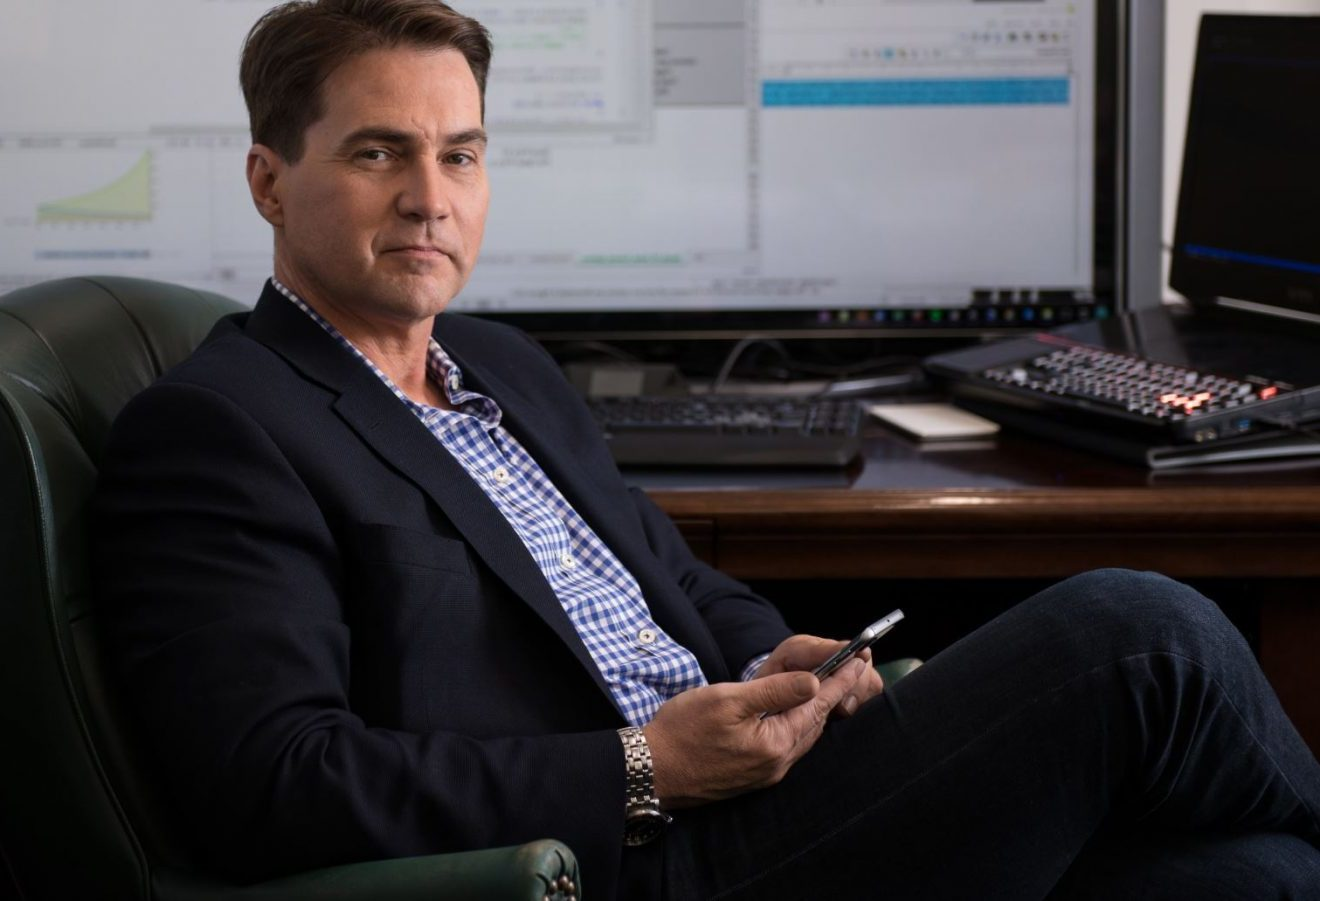 Craig Wright Says Bounded Courier's Conversation Cannot Be Disclosed